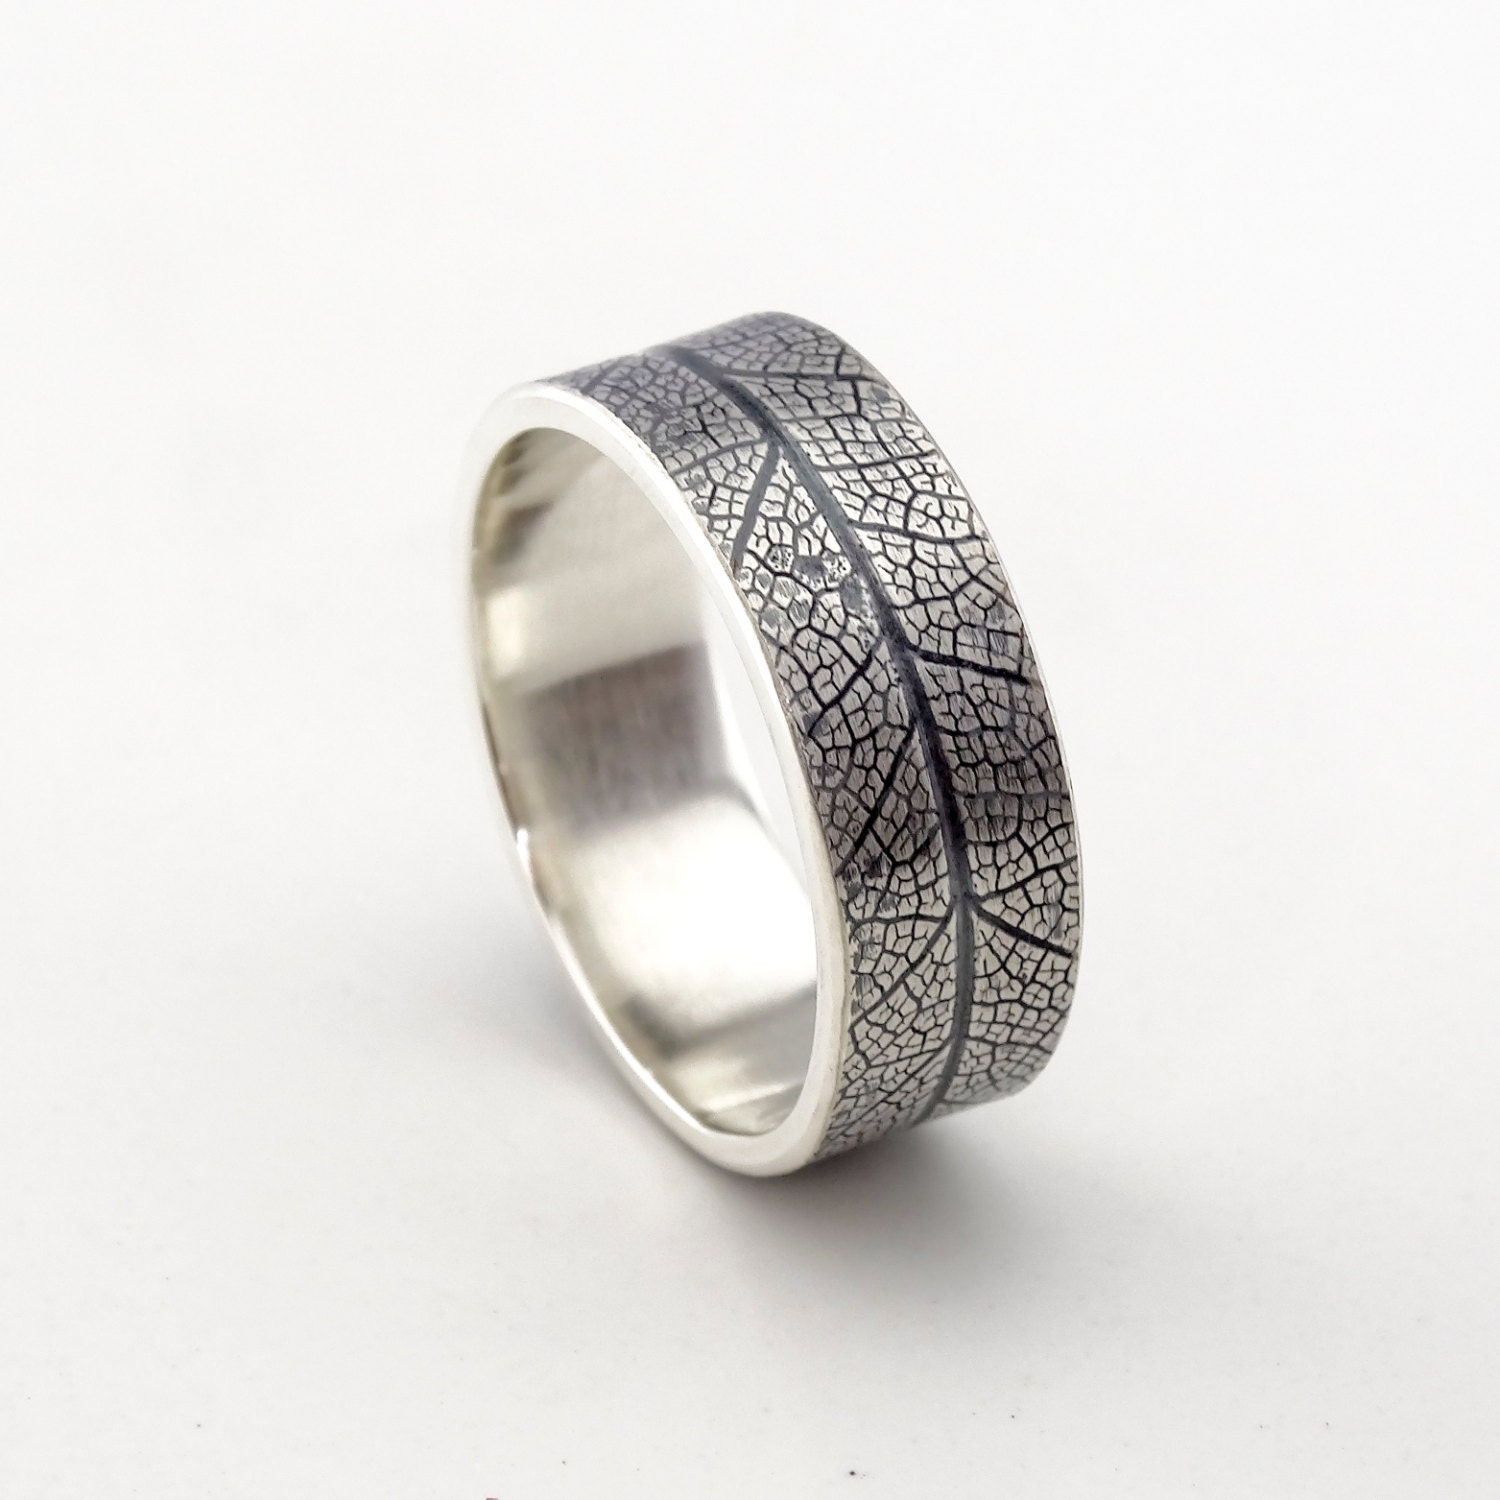 Mens Outdoors Bands: Silver Leaf Ring Men's Wedding Band Nature Ring Outdoor